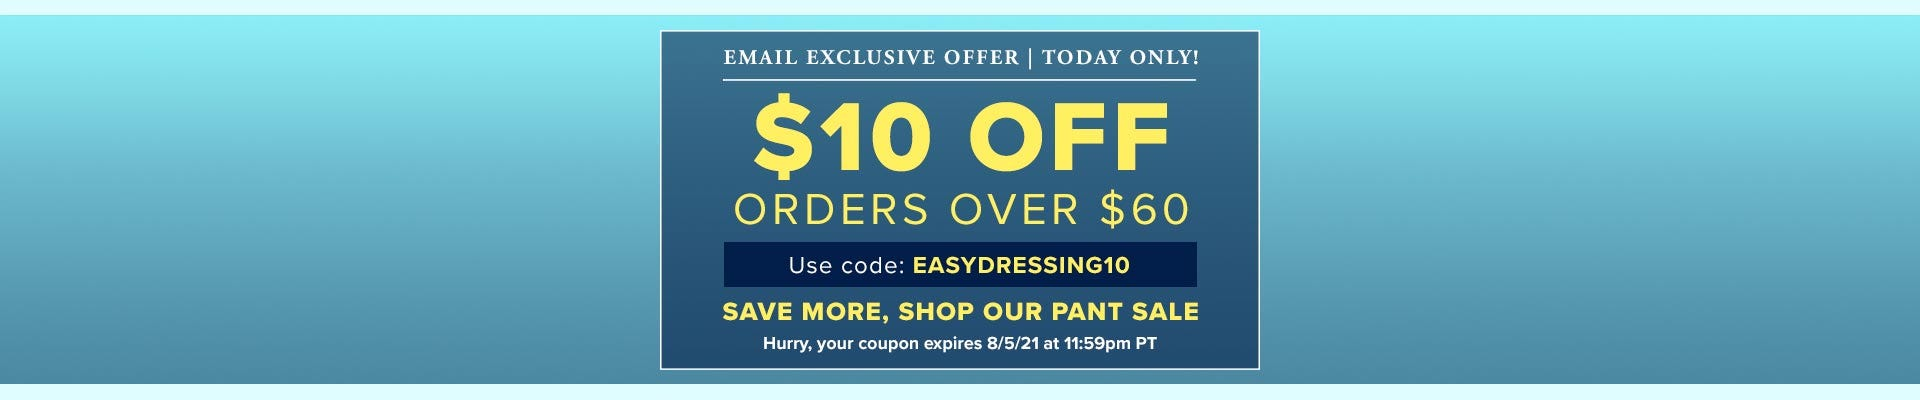 Exclusive email offer - Today only! $10 off orders over $60 - Use code EASYDRESSING10 - Save more, shop our pant sale - Hurry, your coupon expires 8/5/21 at 11:59pm PT